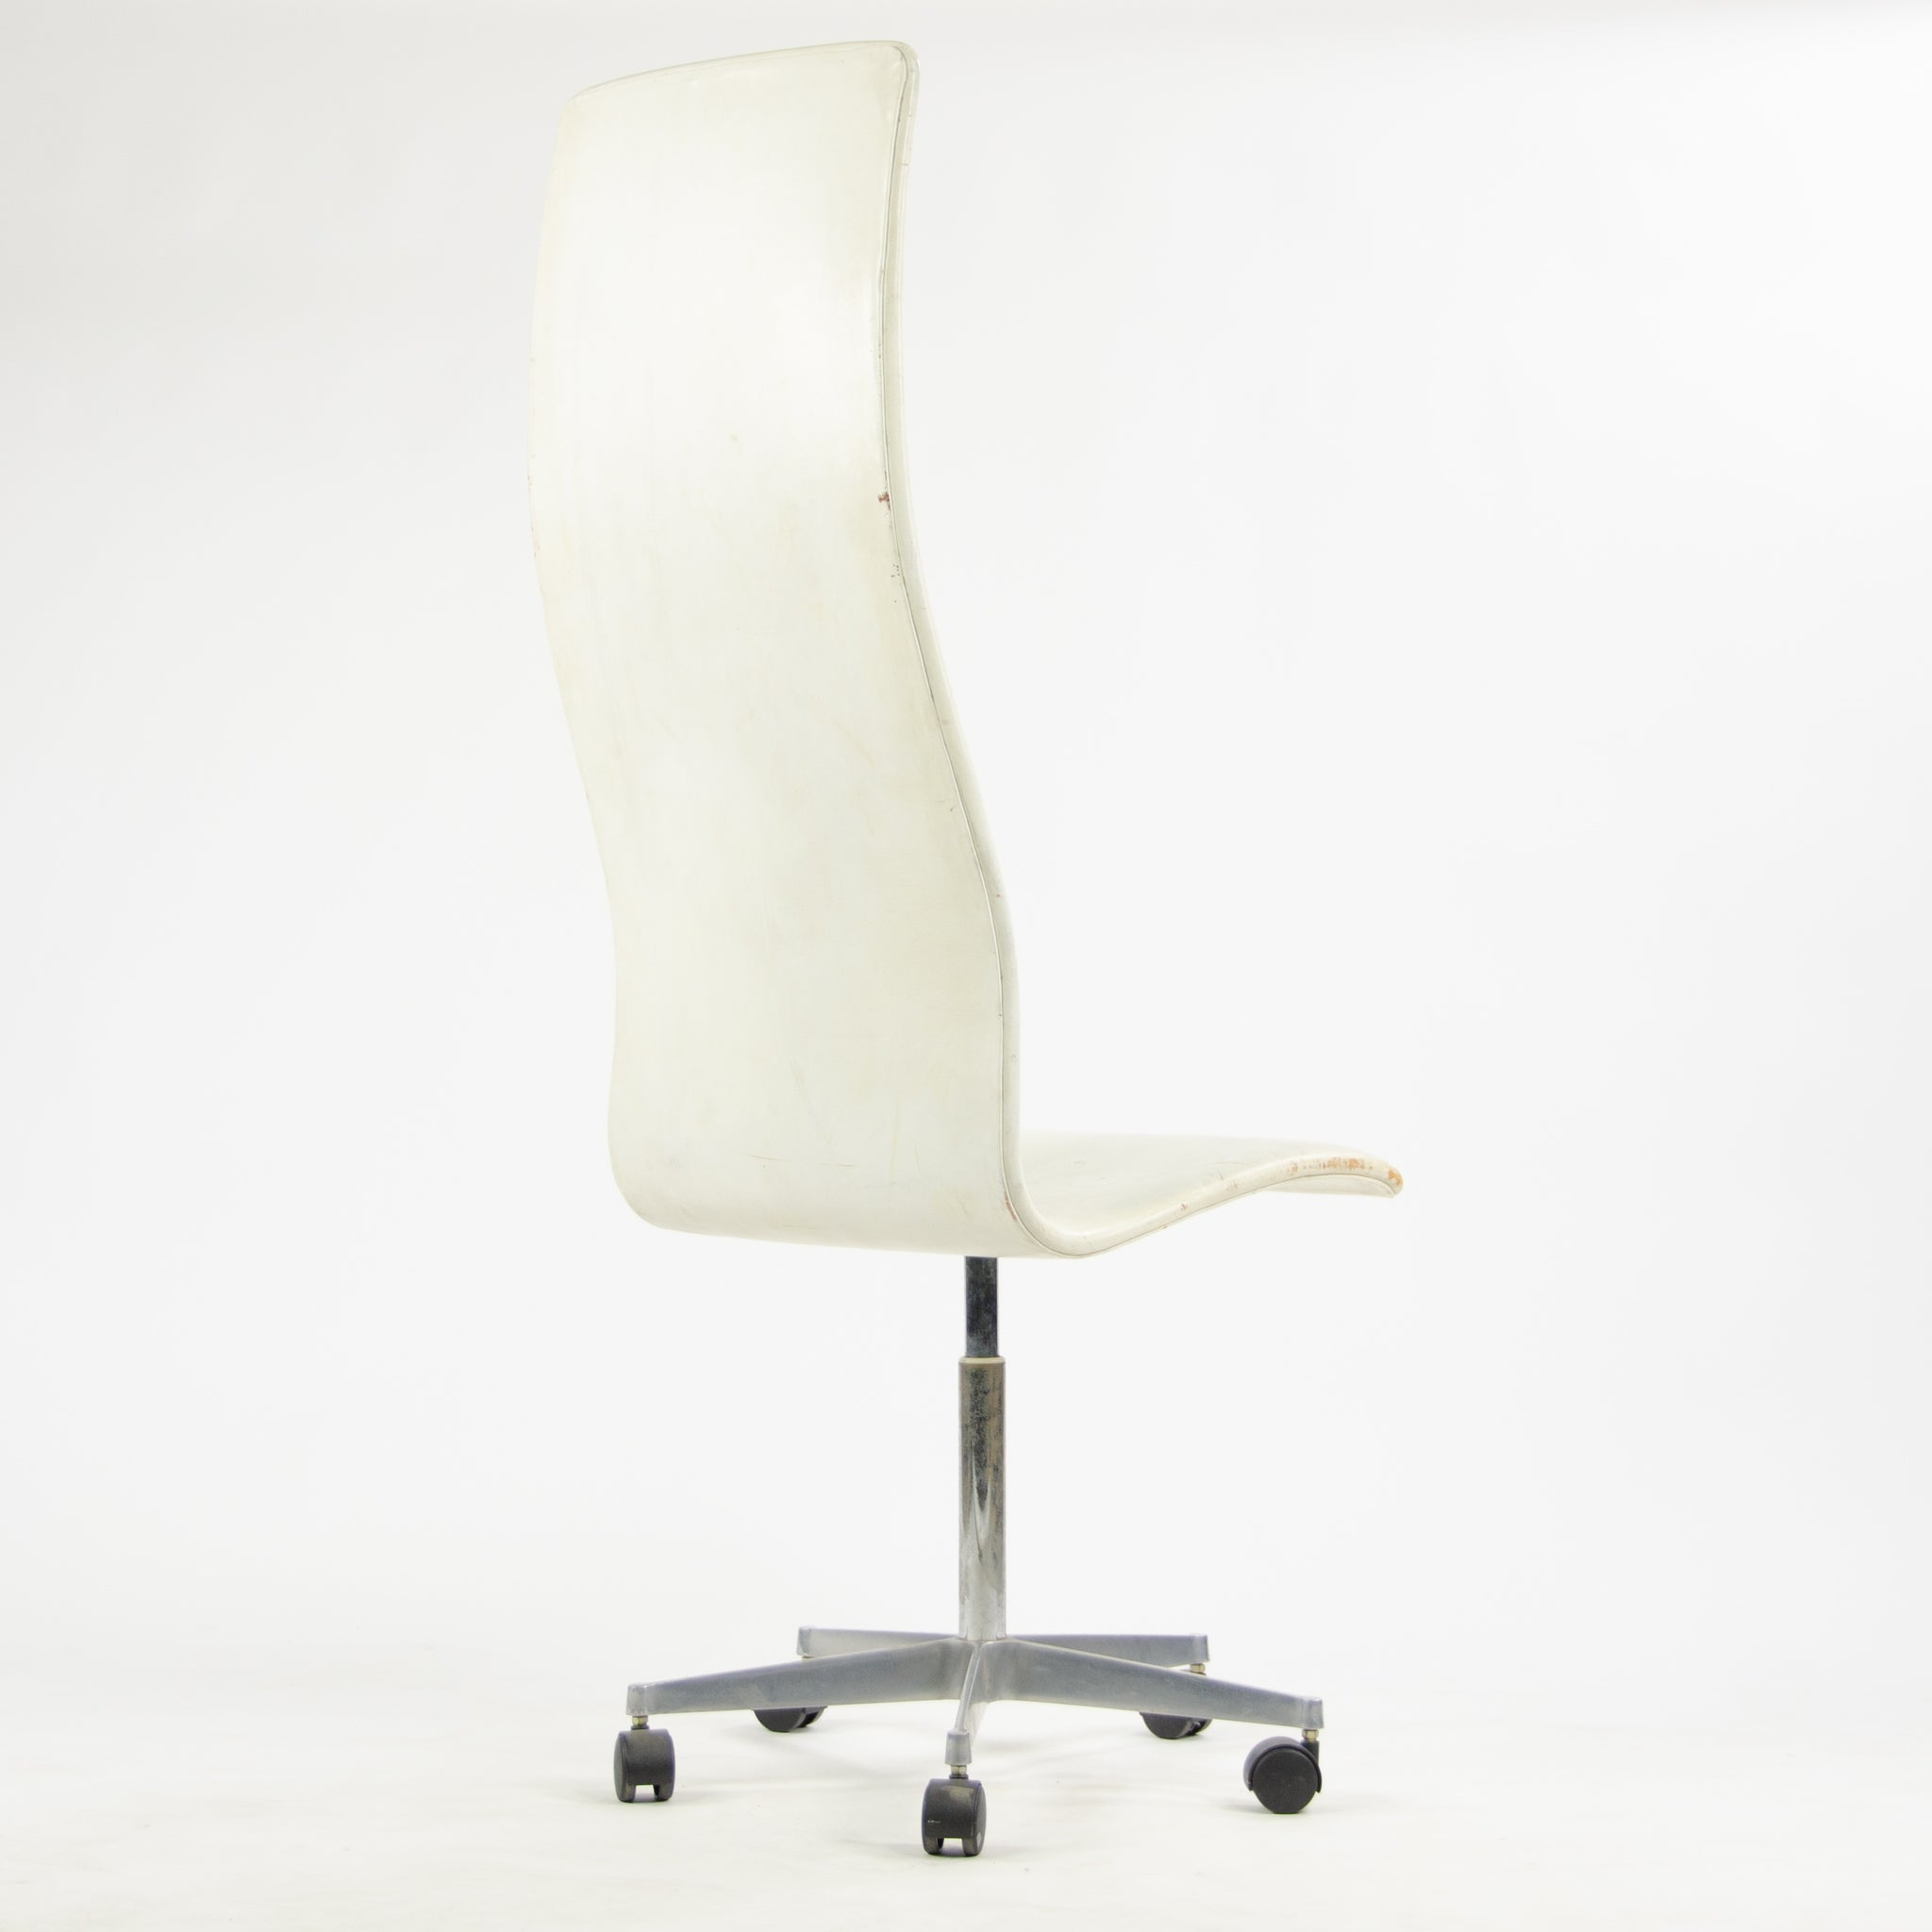 Fritz Hansen Arne Jacobsen Tall Oxford Rolling Chair White Leather